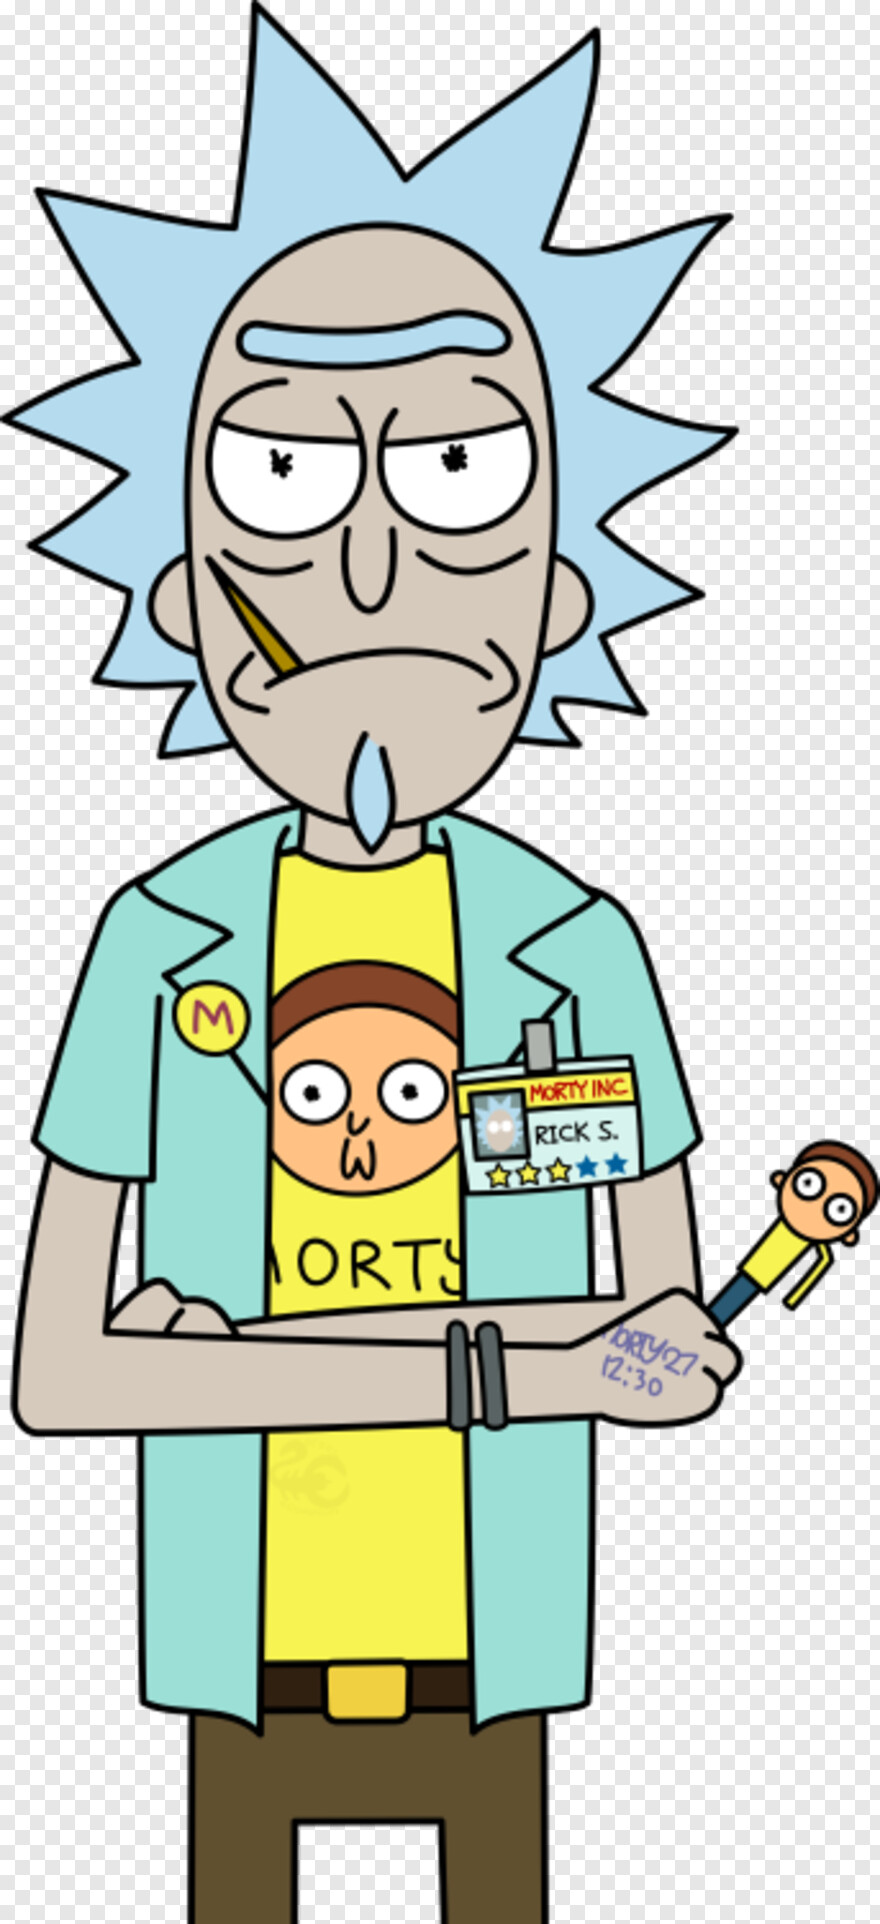 Rick And Morty Png Rick And Morty Rick Vector Png Download 343x750 7280881 Png Image Pngjoy Rick sanchez the art of rick and morty rick and morty, season 3 the rickshank rickdemption animated series, others, rick and morty text overlay png clipart. rick and morty png rick and morty